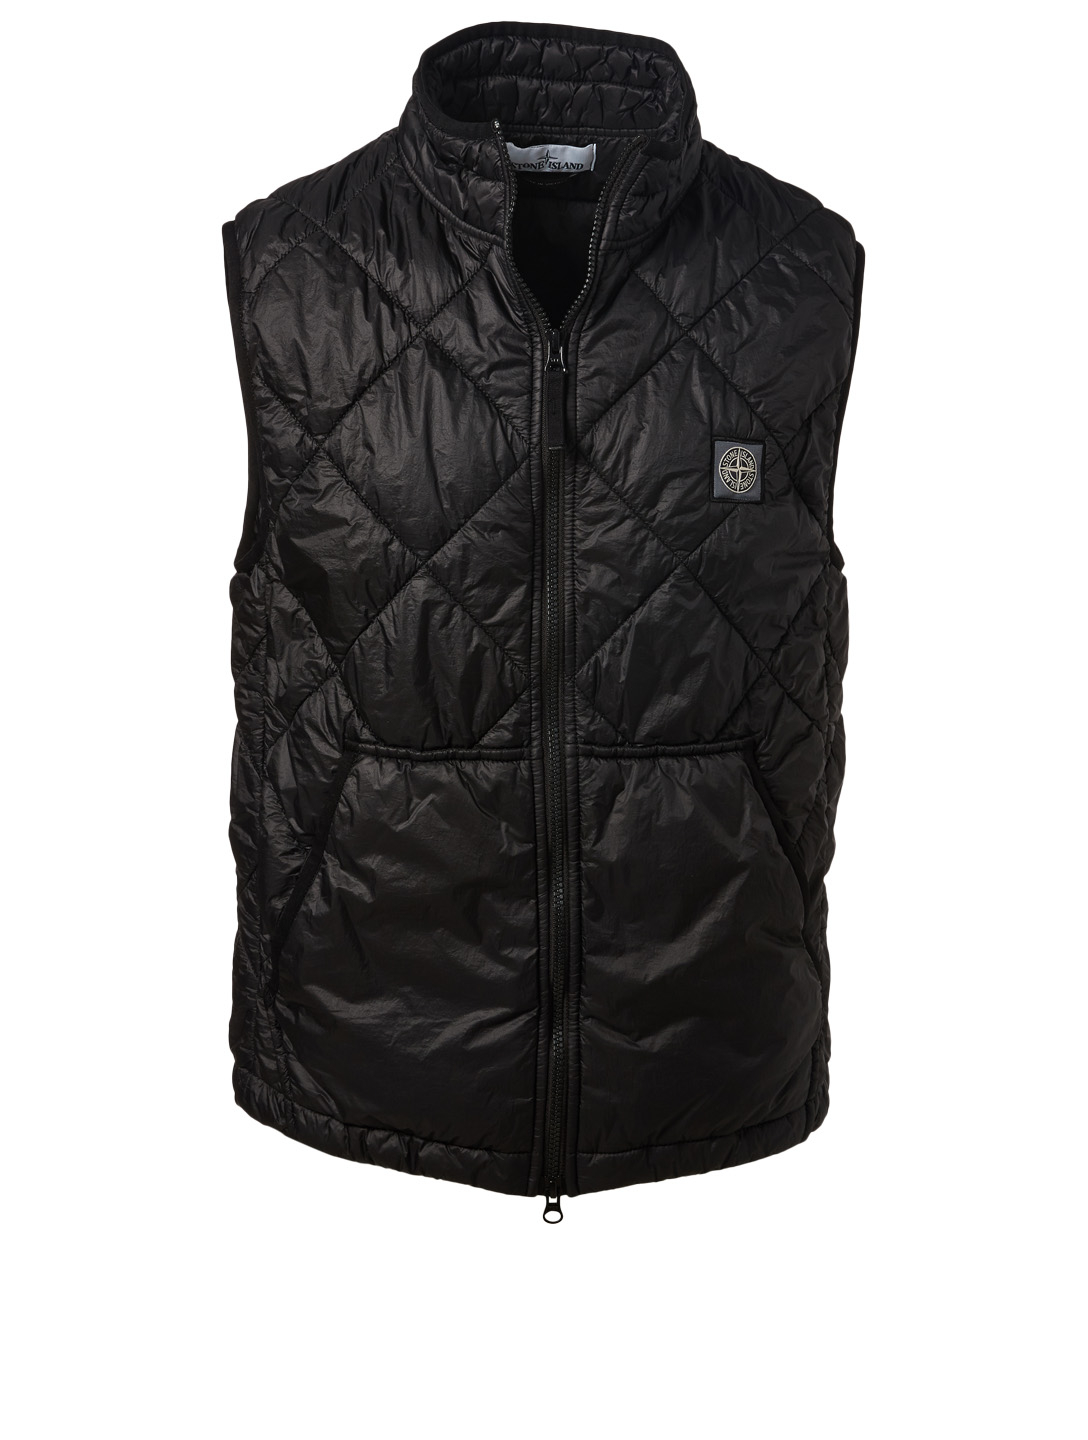 STONE ISLAND Quilted Vest Men's Black